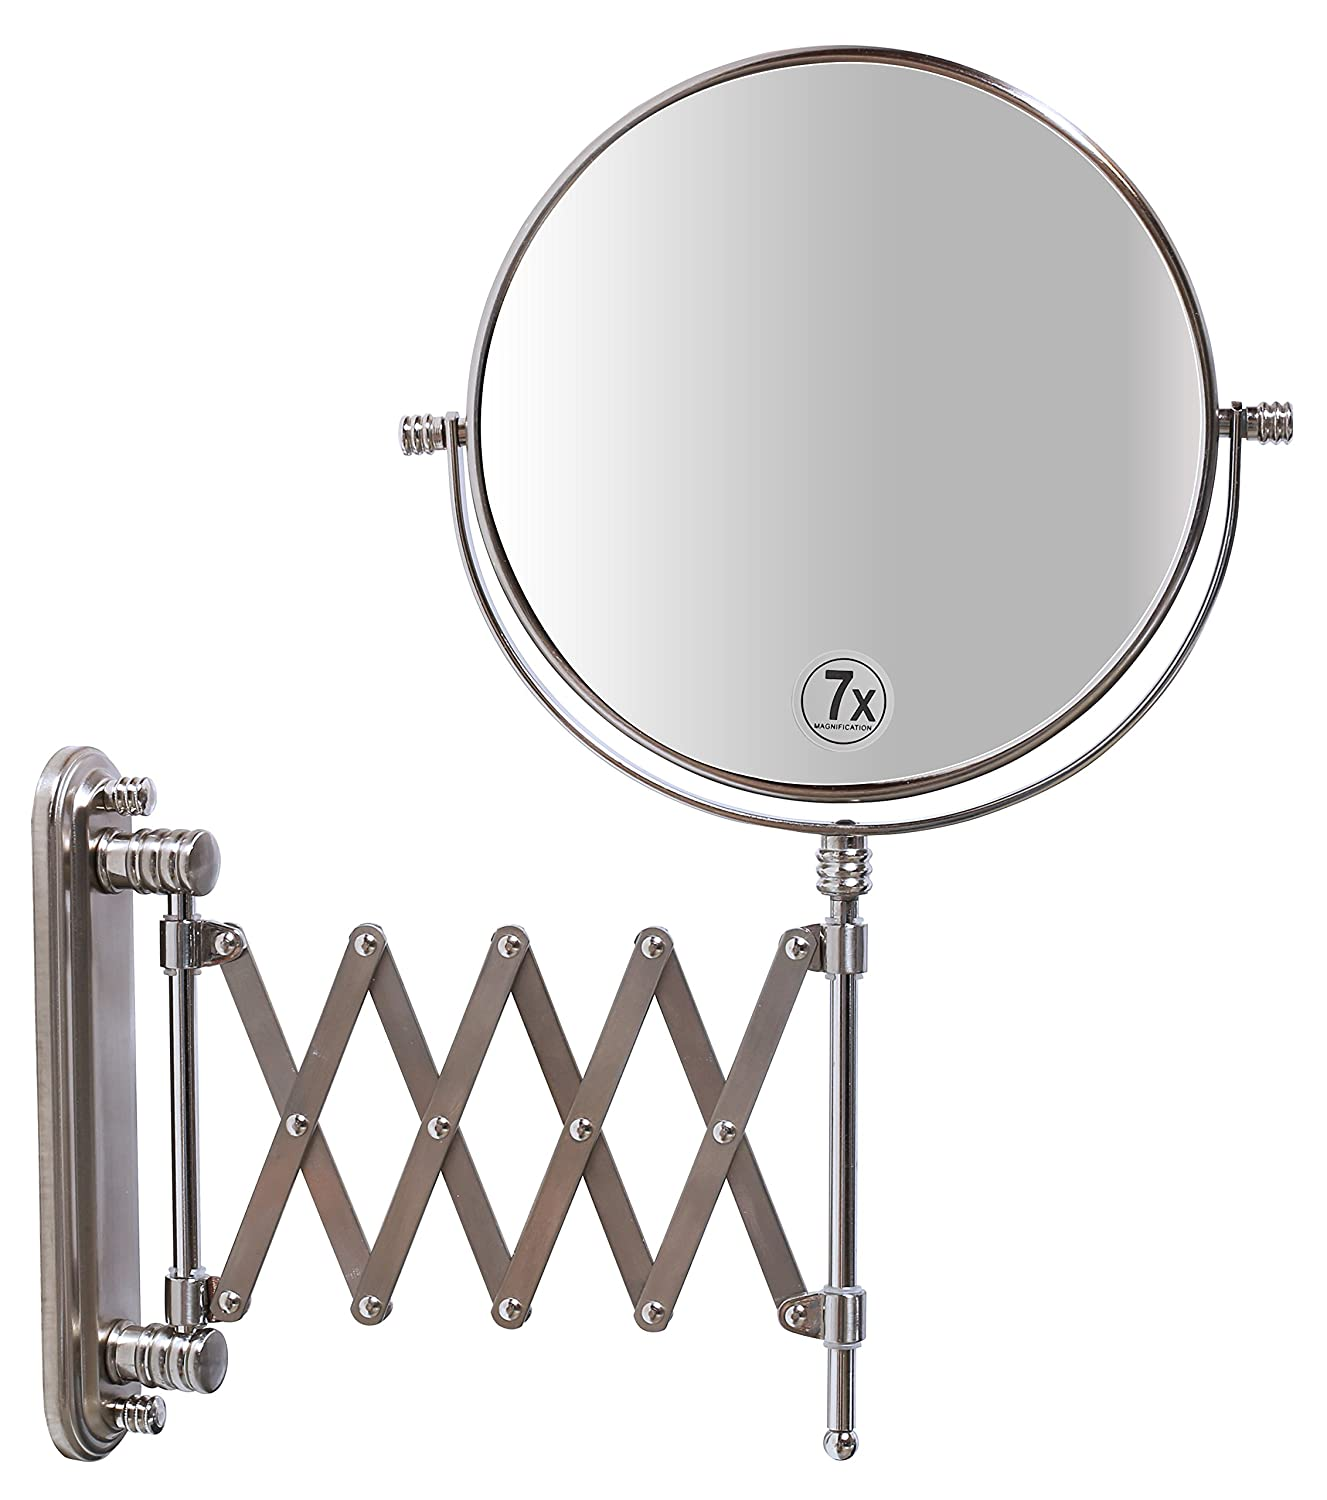 DecoBros 8-Inch Two-Sided Extension Wall Mount Mirror with 7x Magnification, 13.5-Inch Extension, Nickel : Beauty